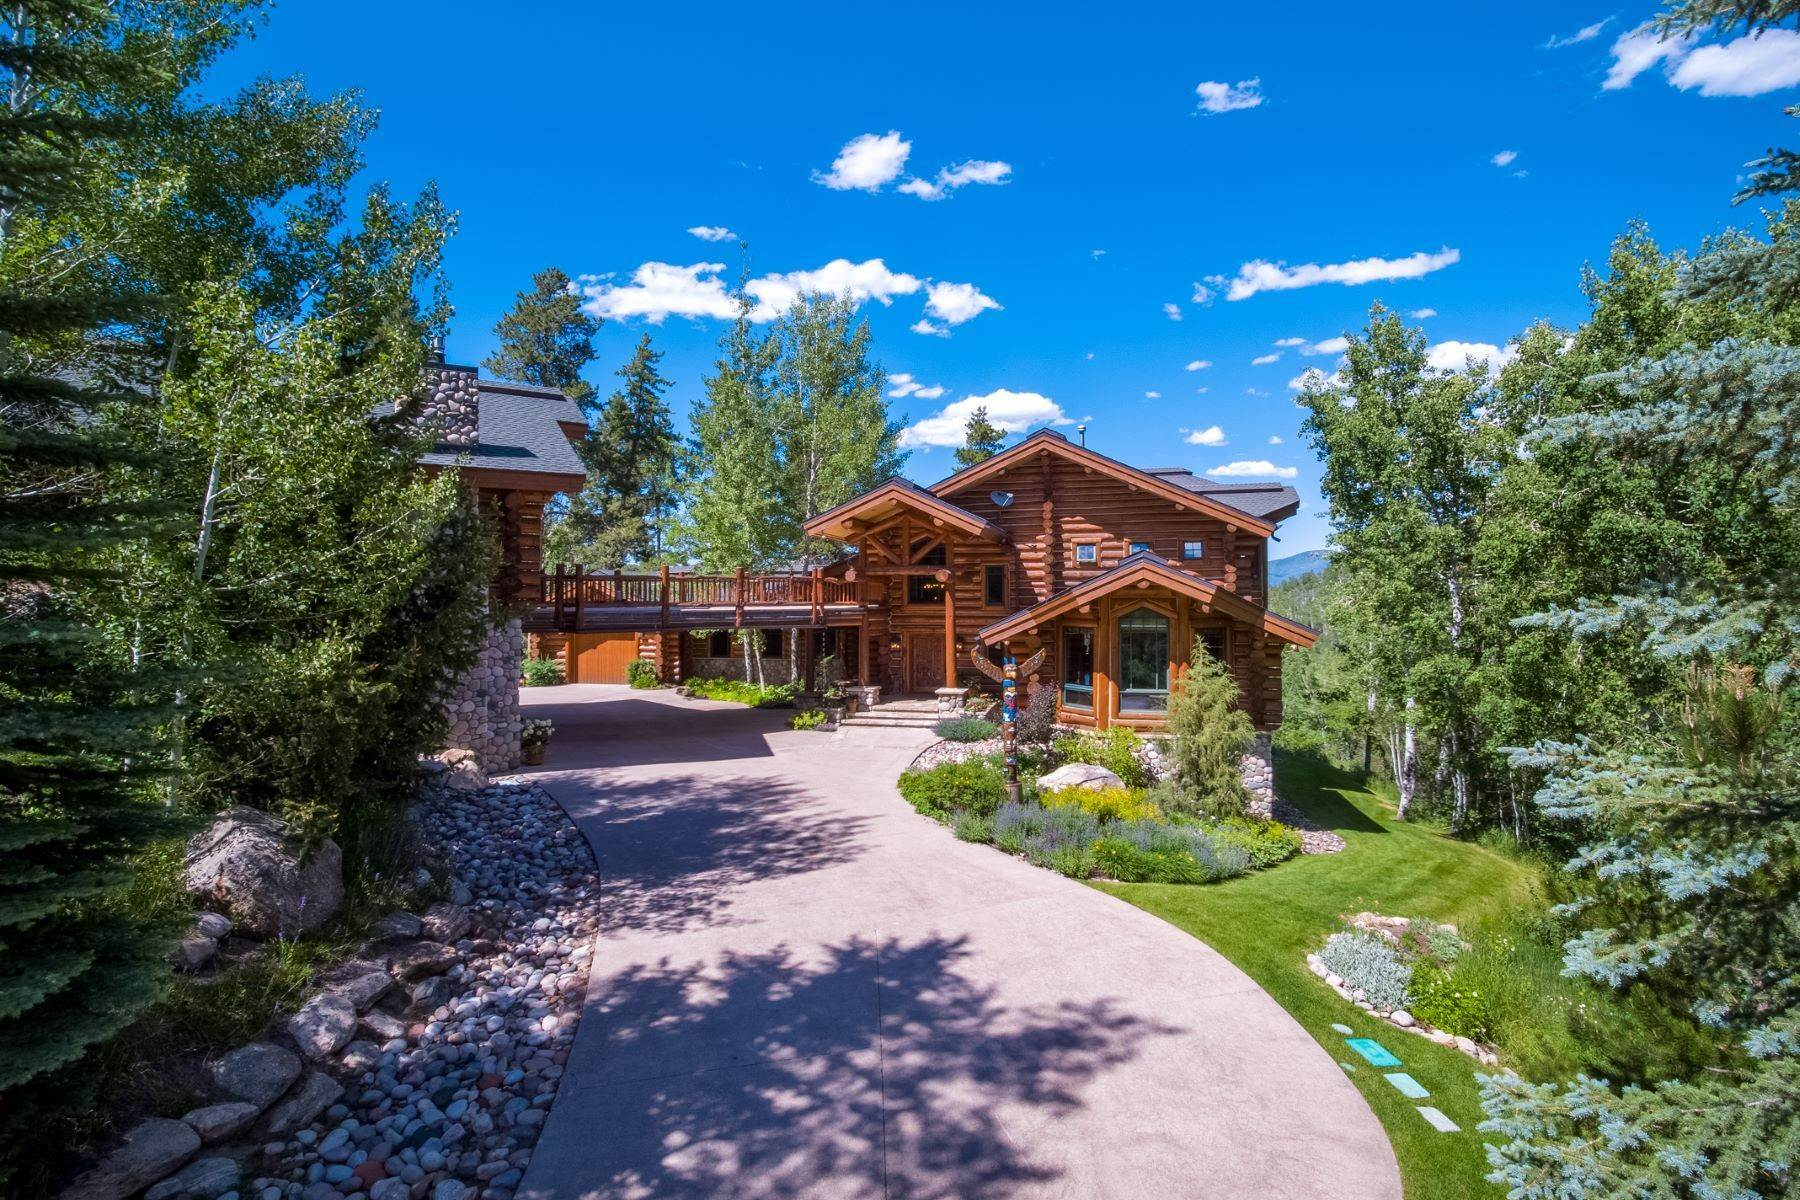 Single Family Homes for Active at Aspenglen 27800 Wapiti Way Steamboat Springs, Colorado 80487 United States